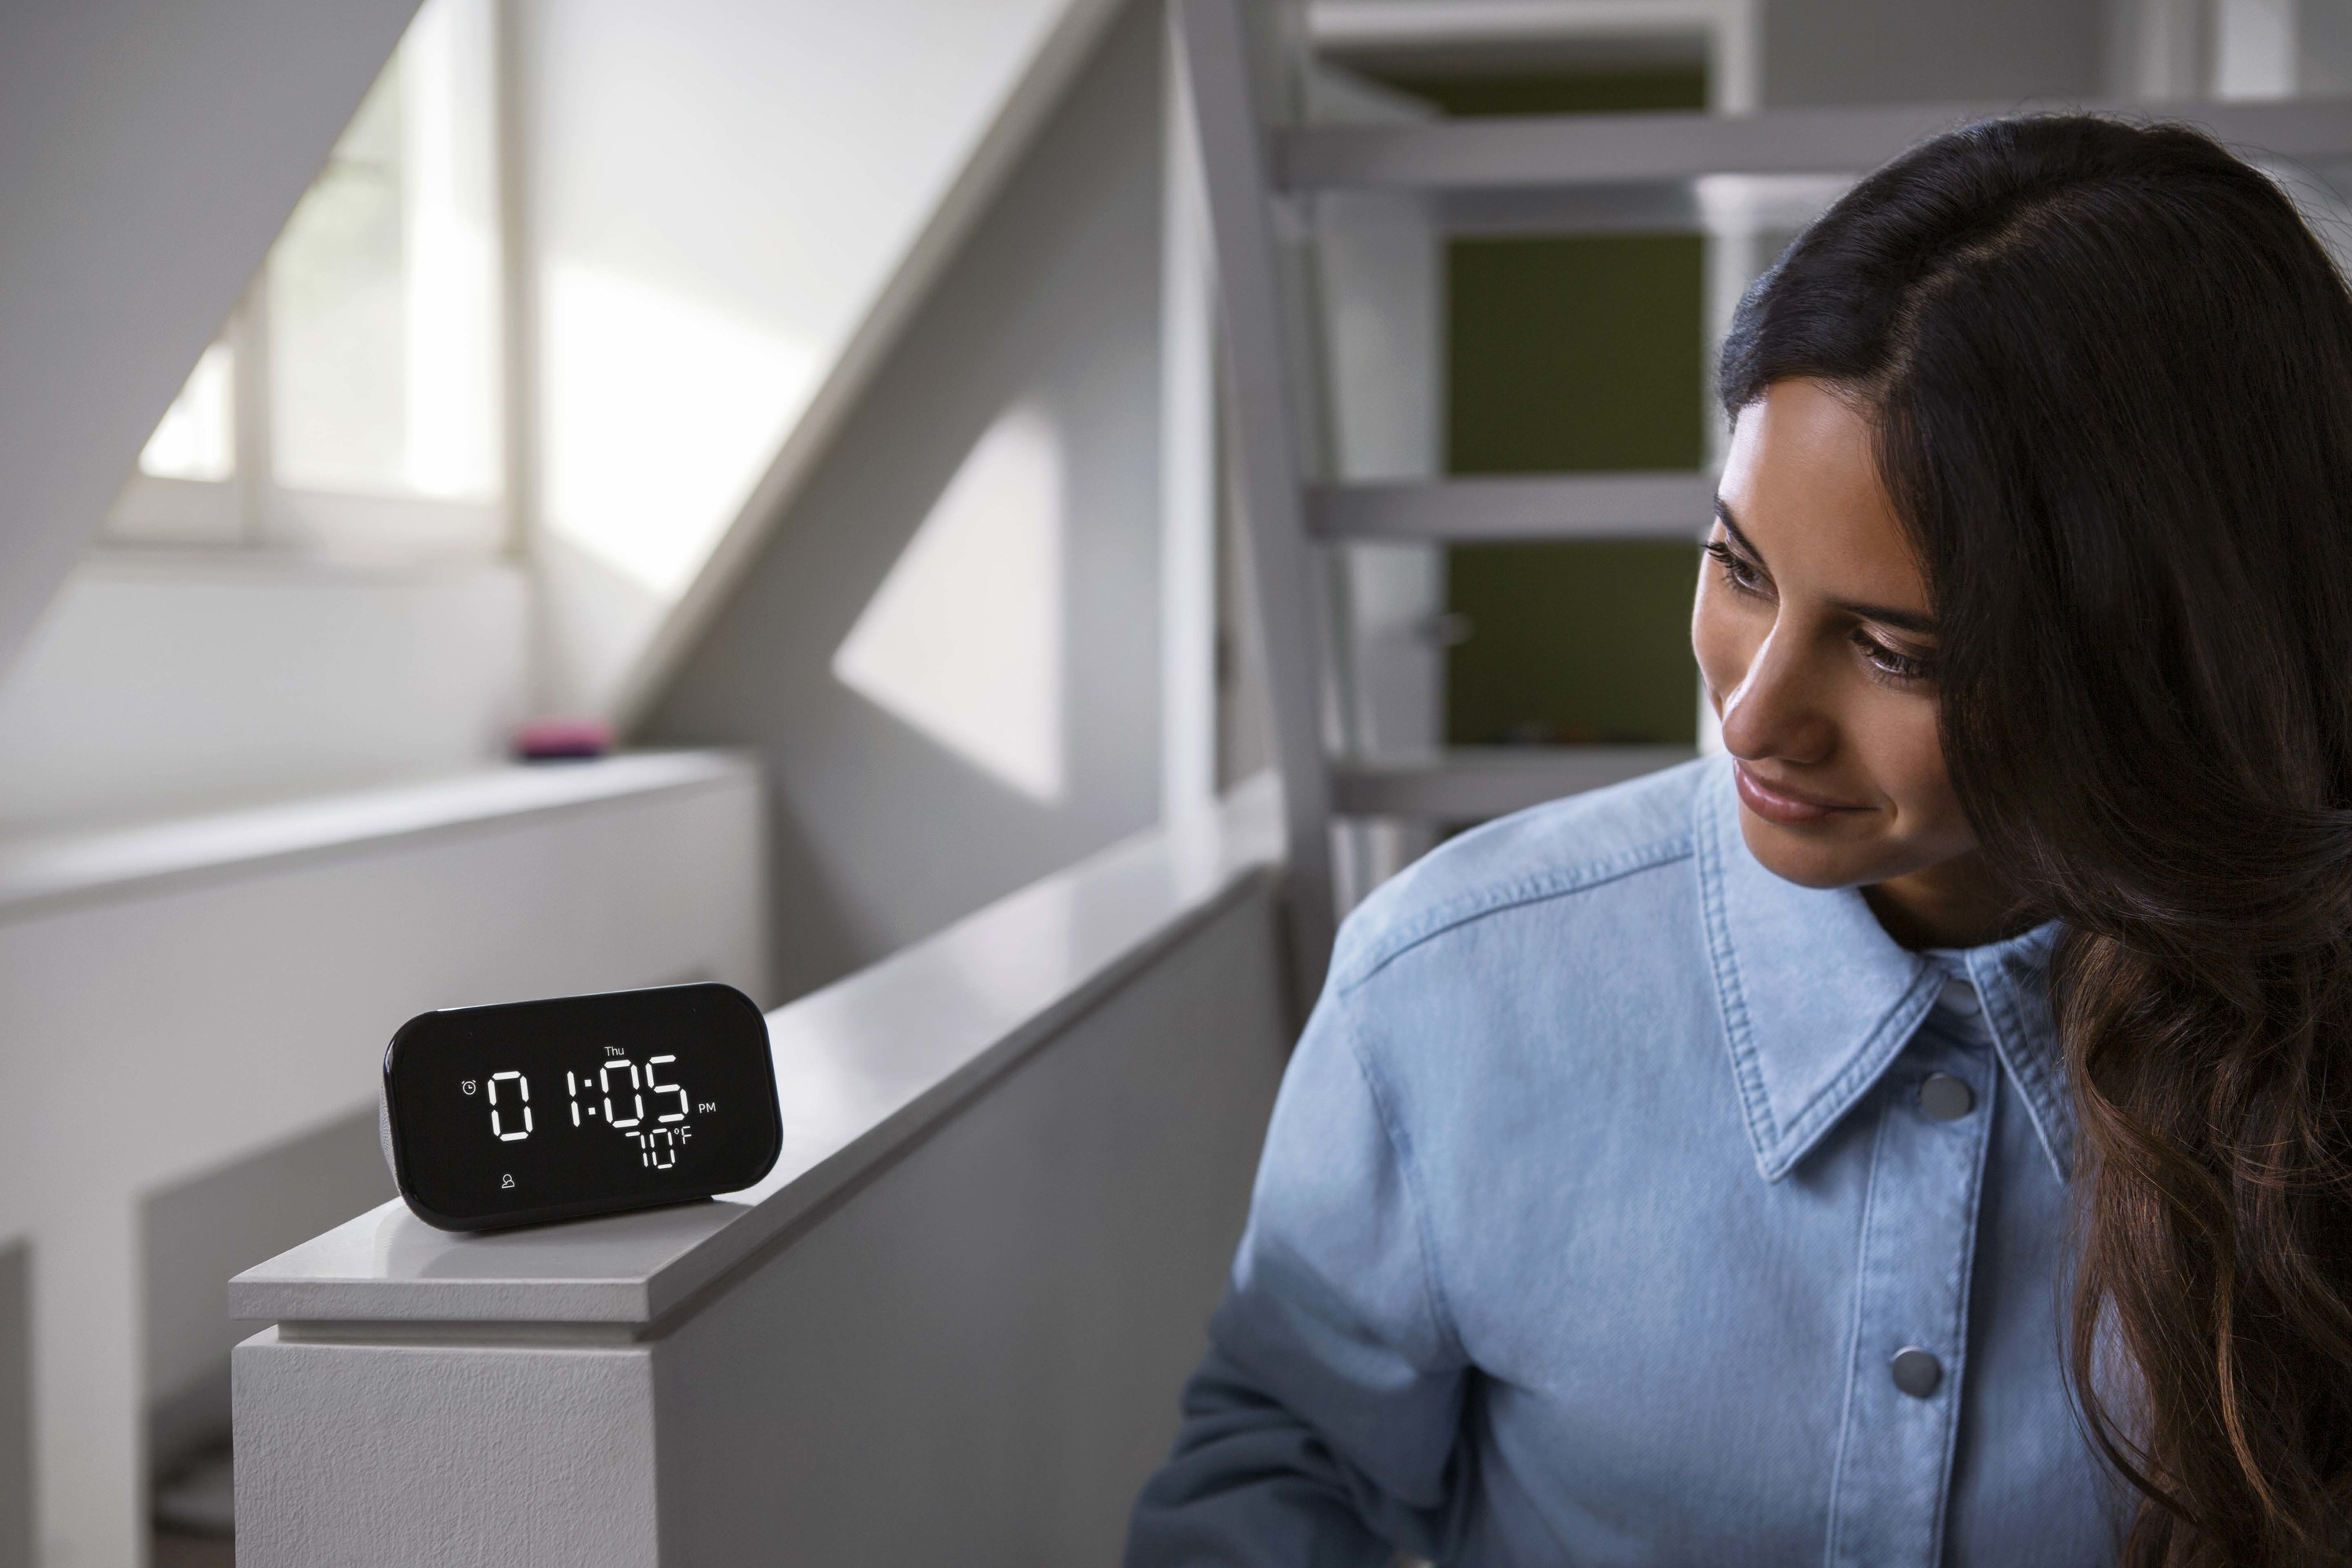 person looking at a lenova smart clock on a white ledge